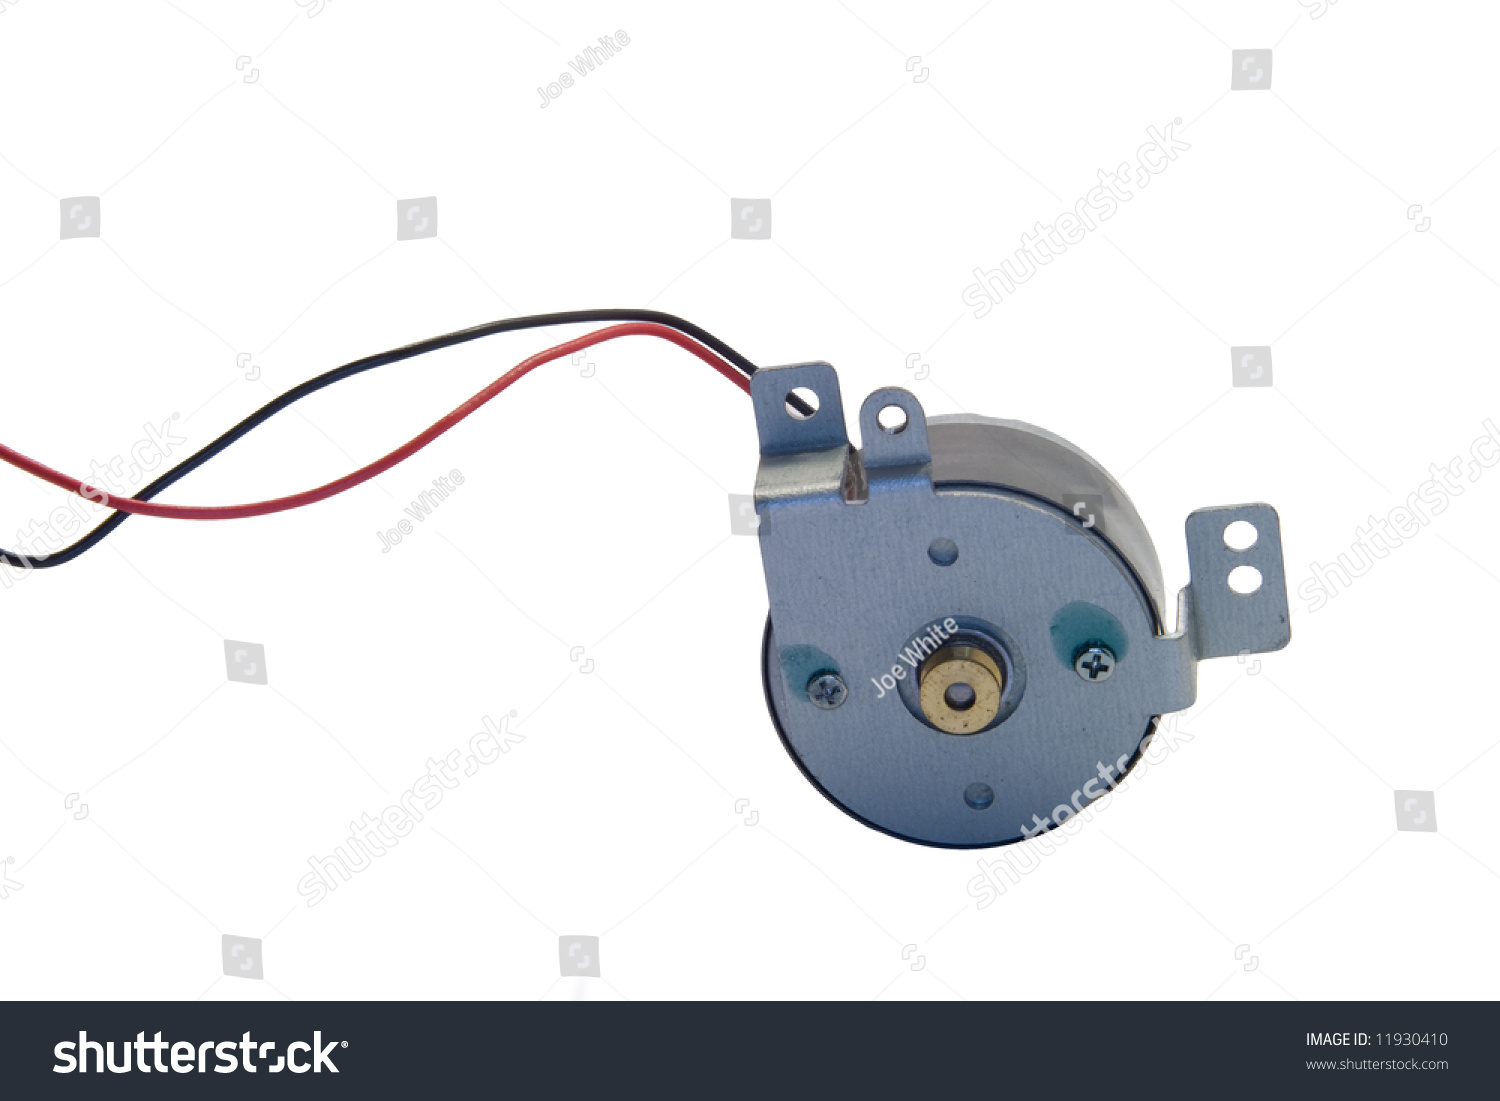 Direct Current Dc Electric Motor With Wires Against